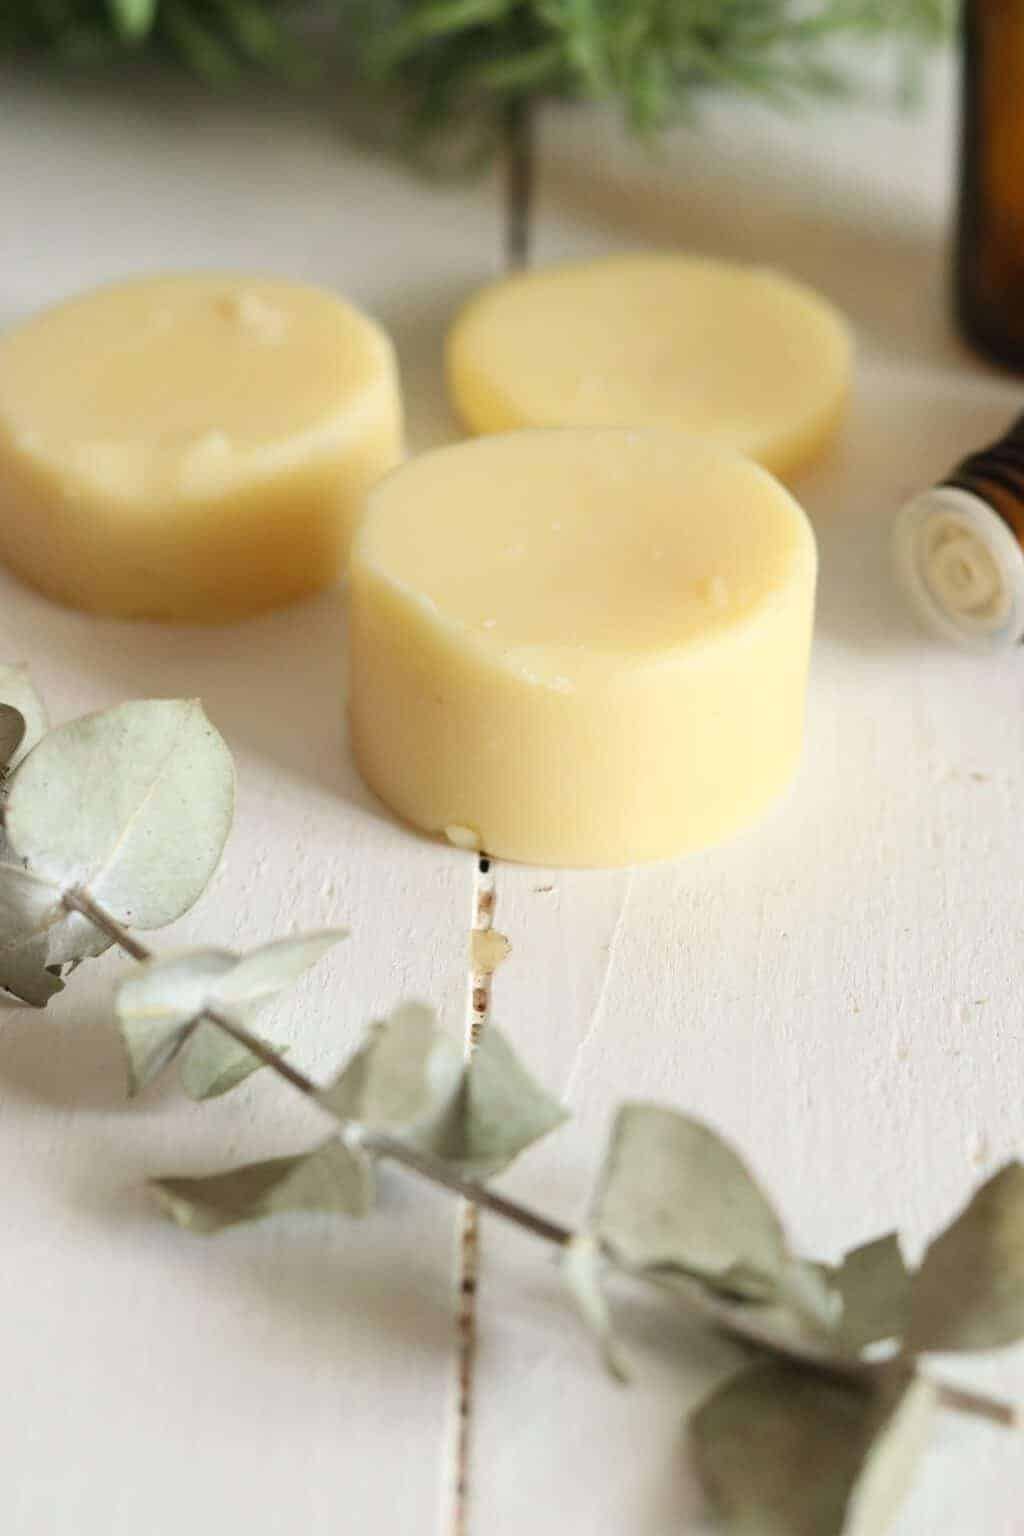 diy bug repellent lotion bars on table with eucalyptus stems and glass oil bottles